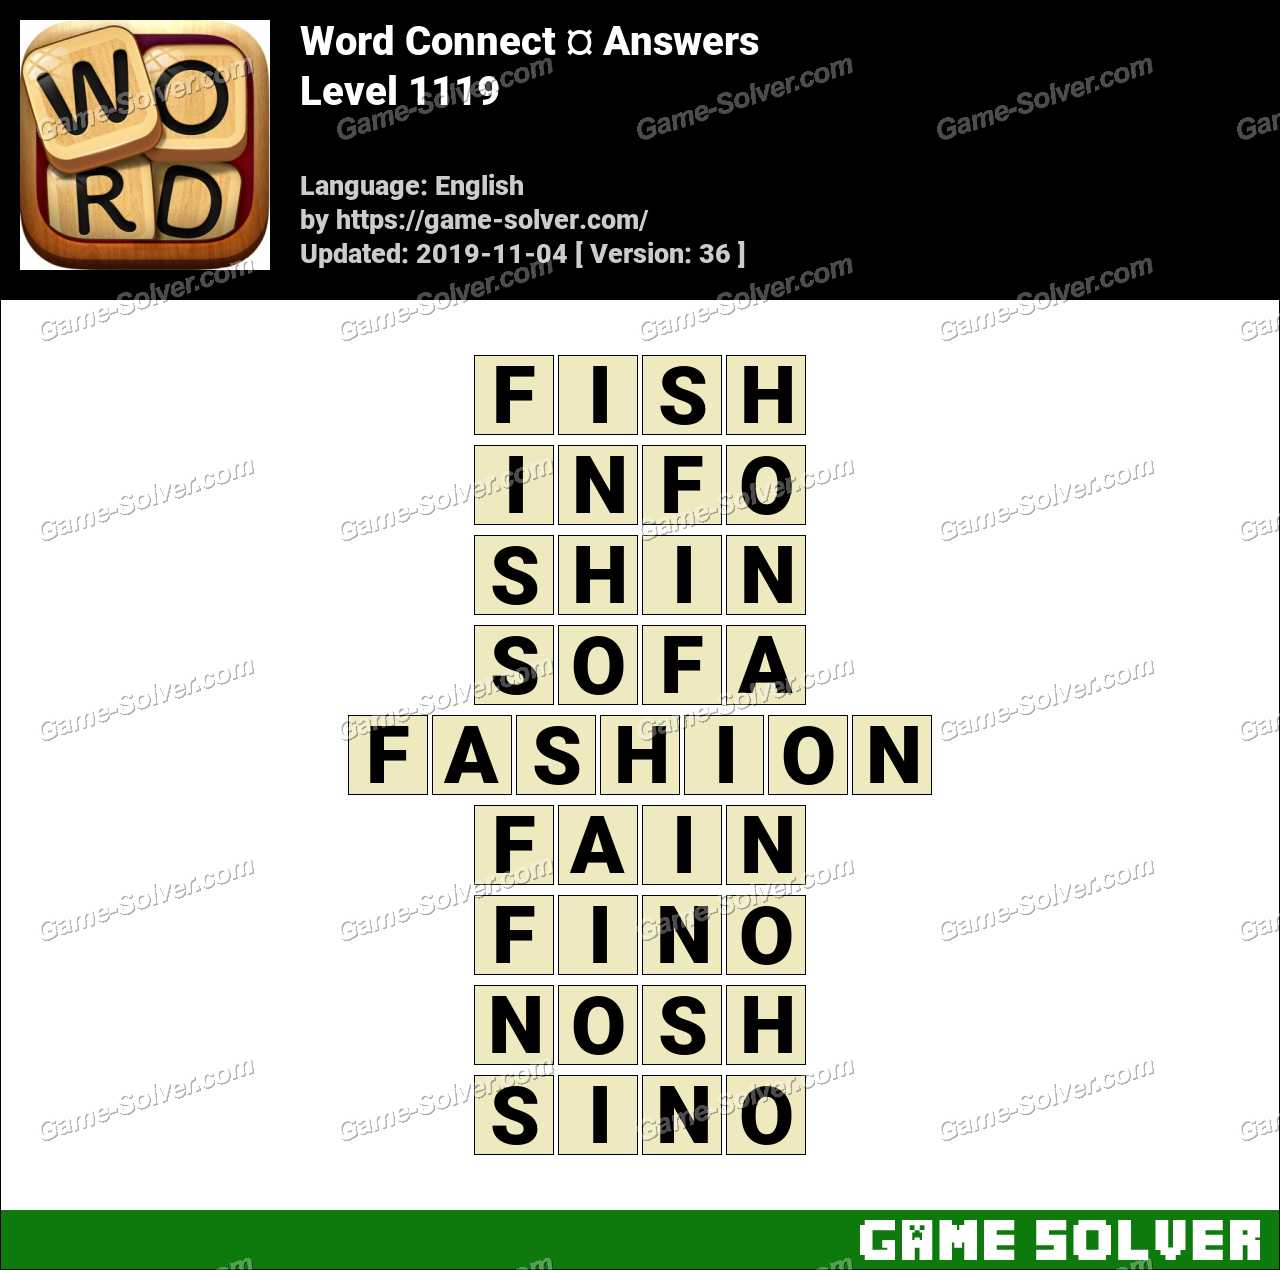 Word Connect Level 1119 Answers